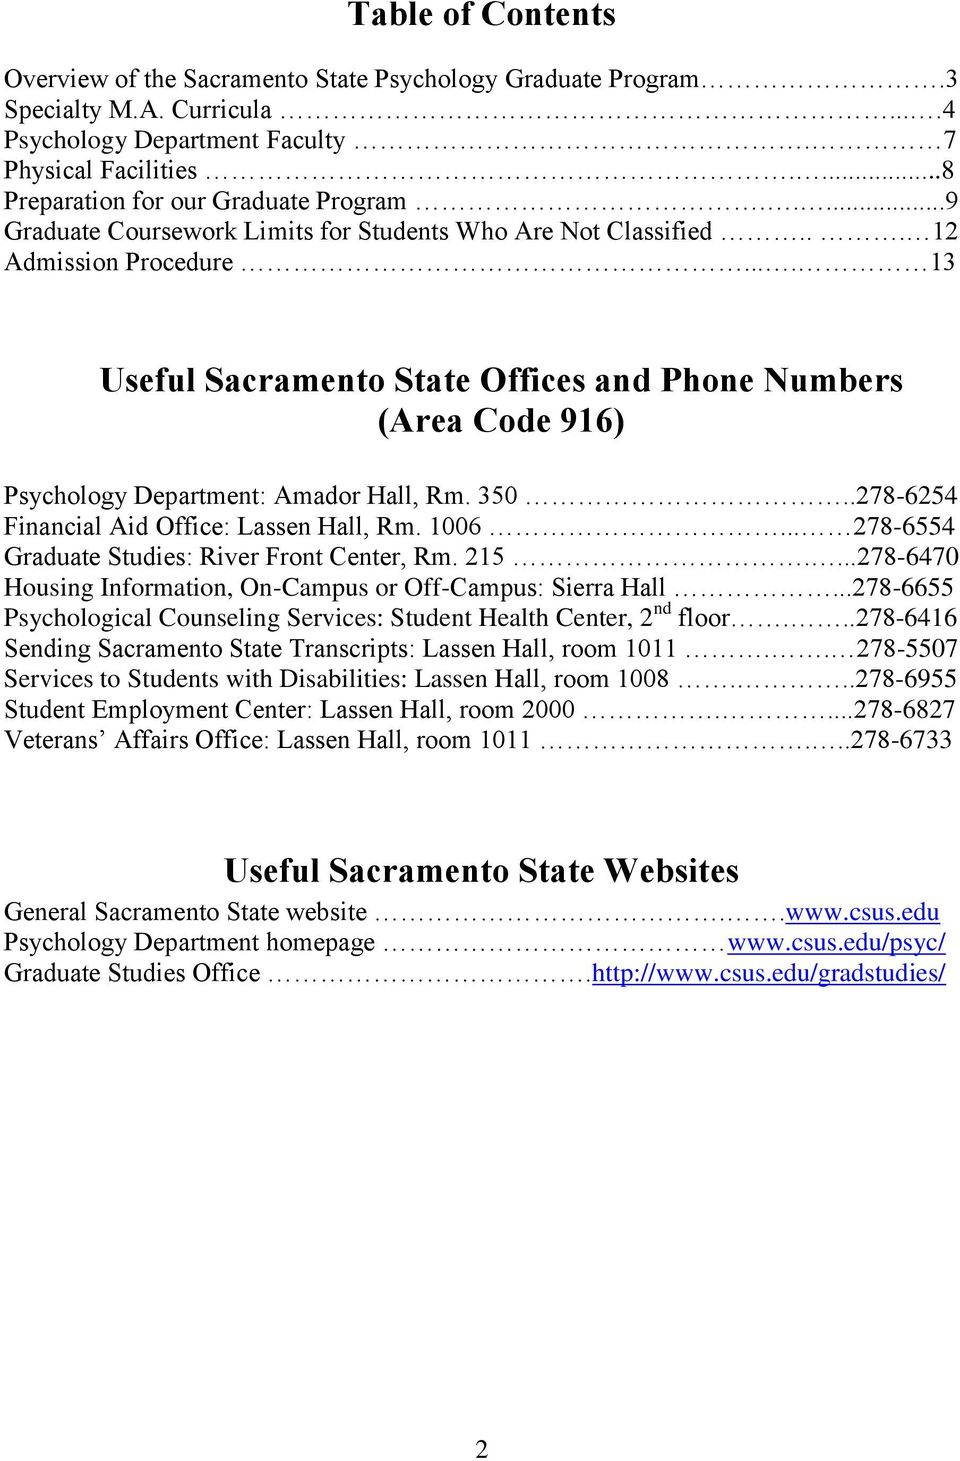 ... 13 Useful Sacramento State Offices and Phone Numbers (Area Code 916) Psychology Department: Amador Hall, Rm. 350..278-6254 Financial Aid Office: Lassen Hall, Rm. 1006.